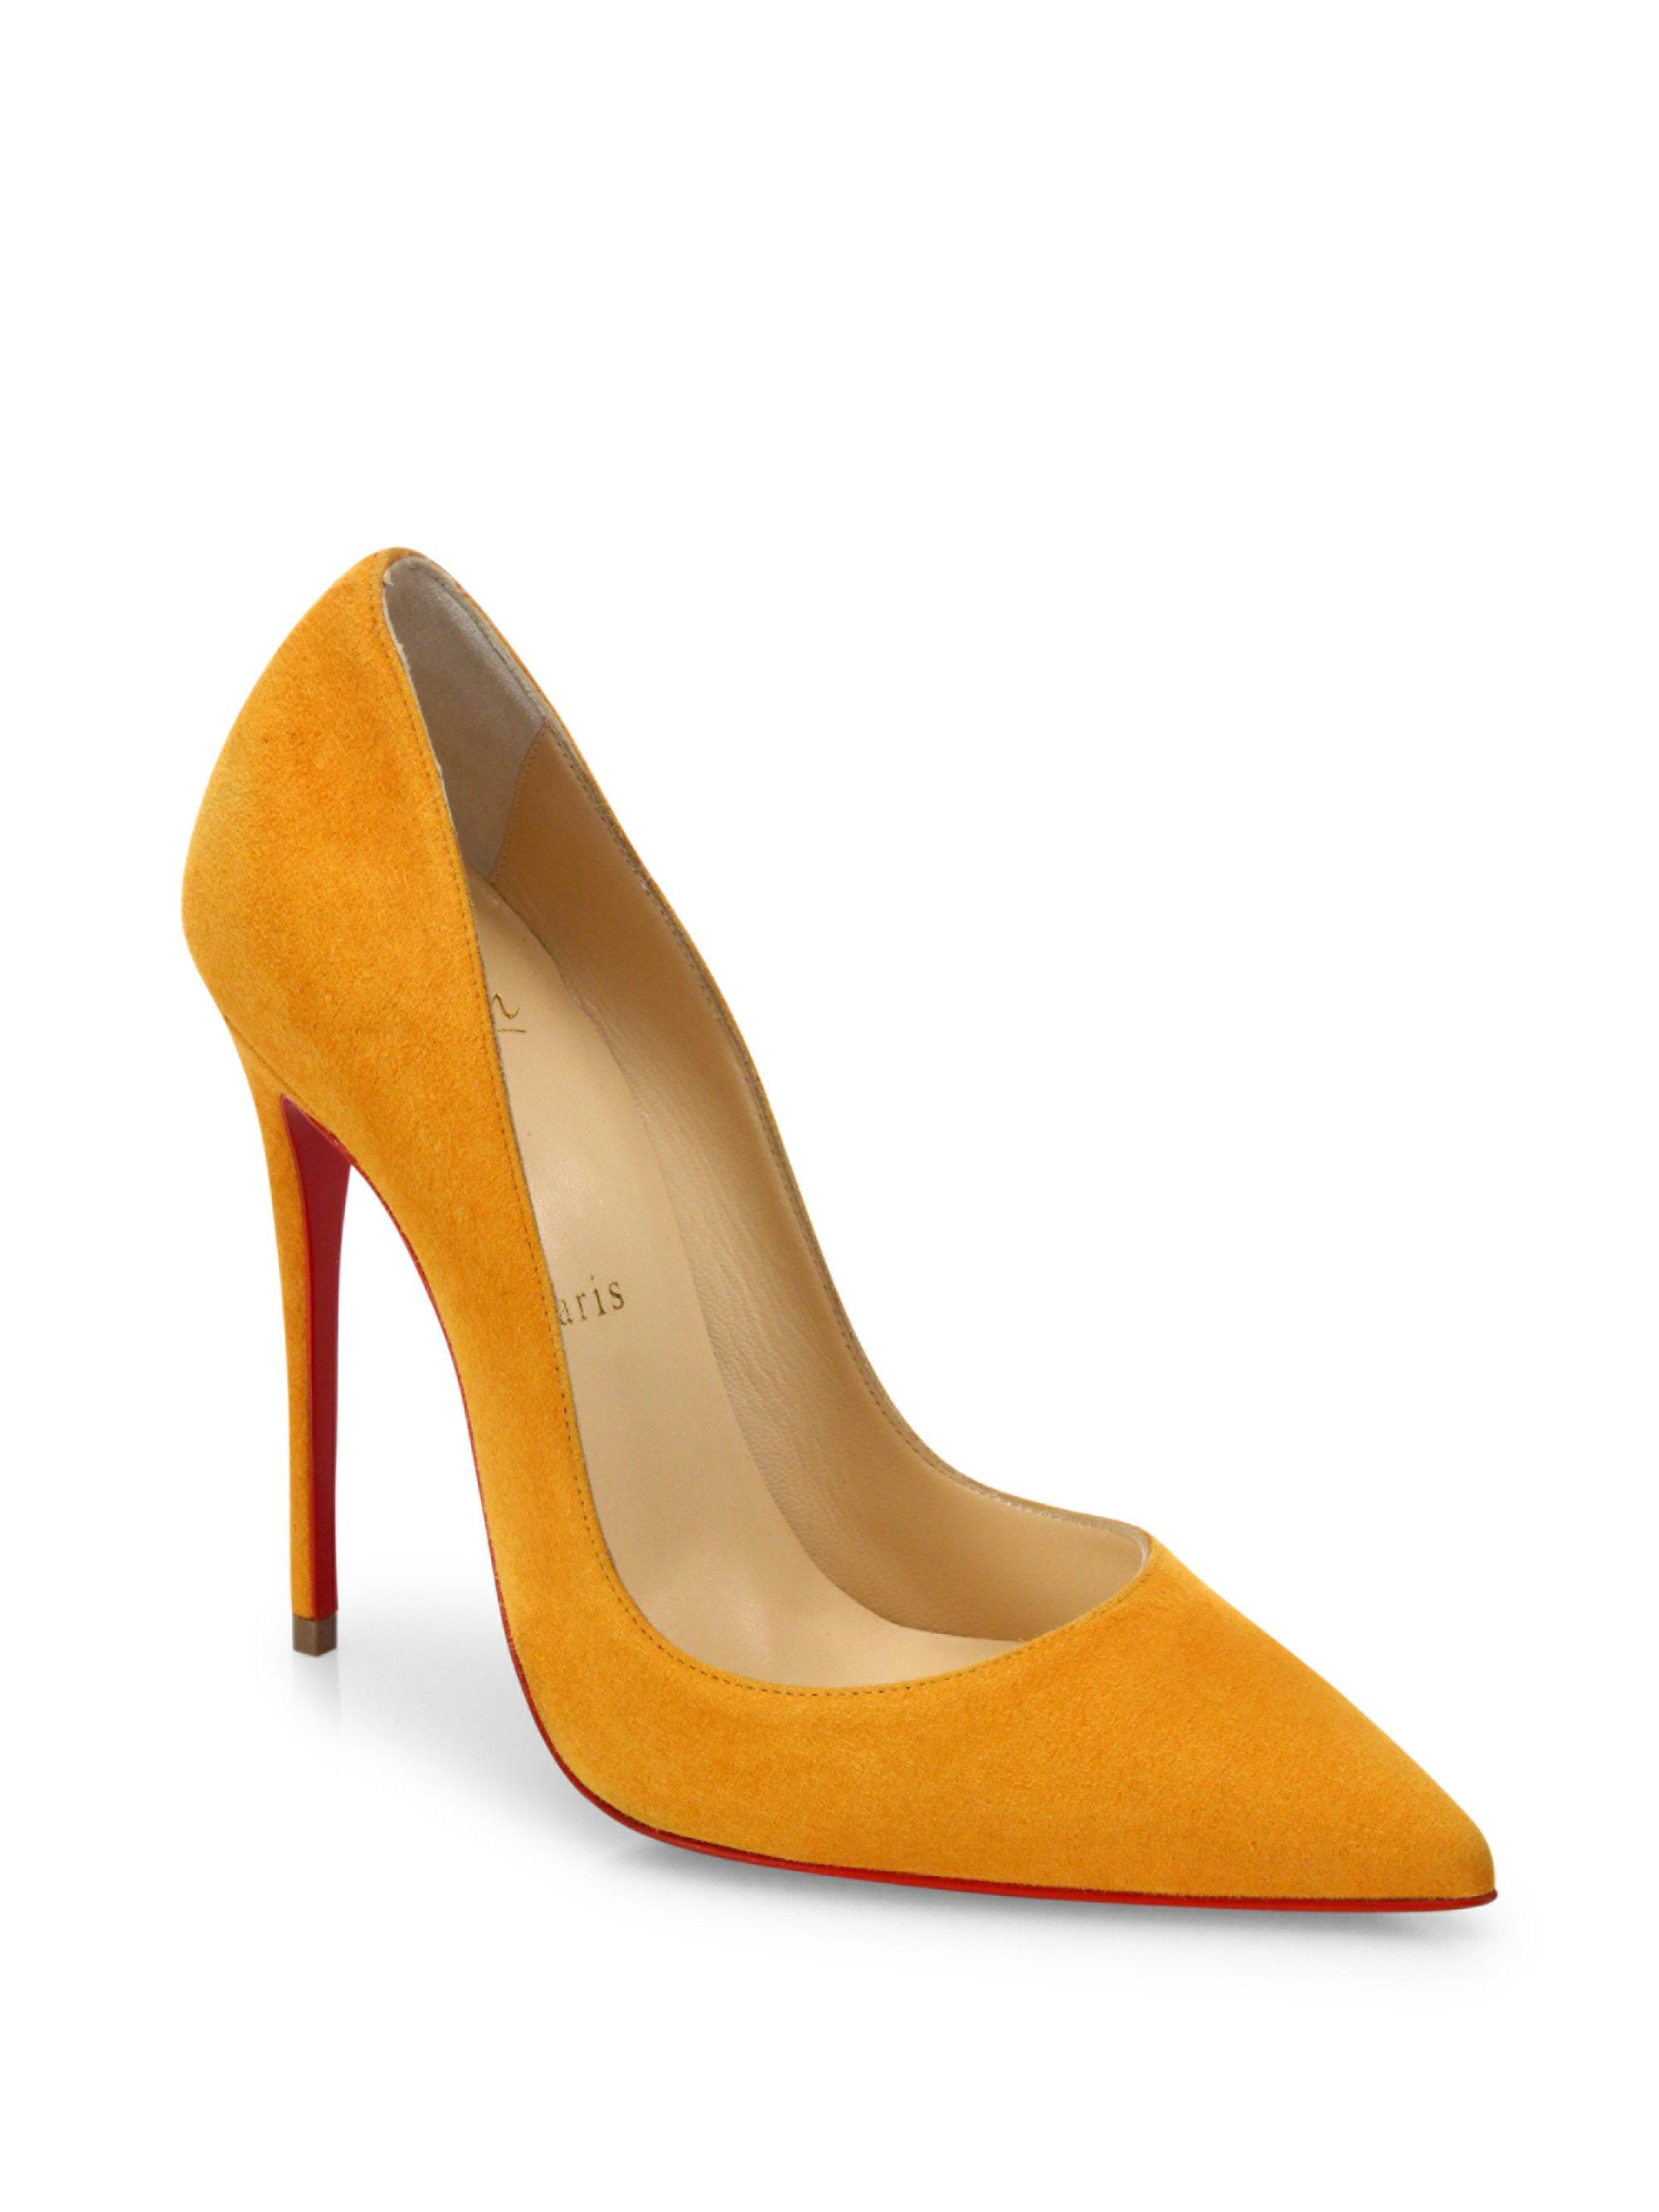 Christian Louboutin So Kate Suede 120mm